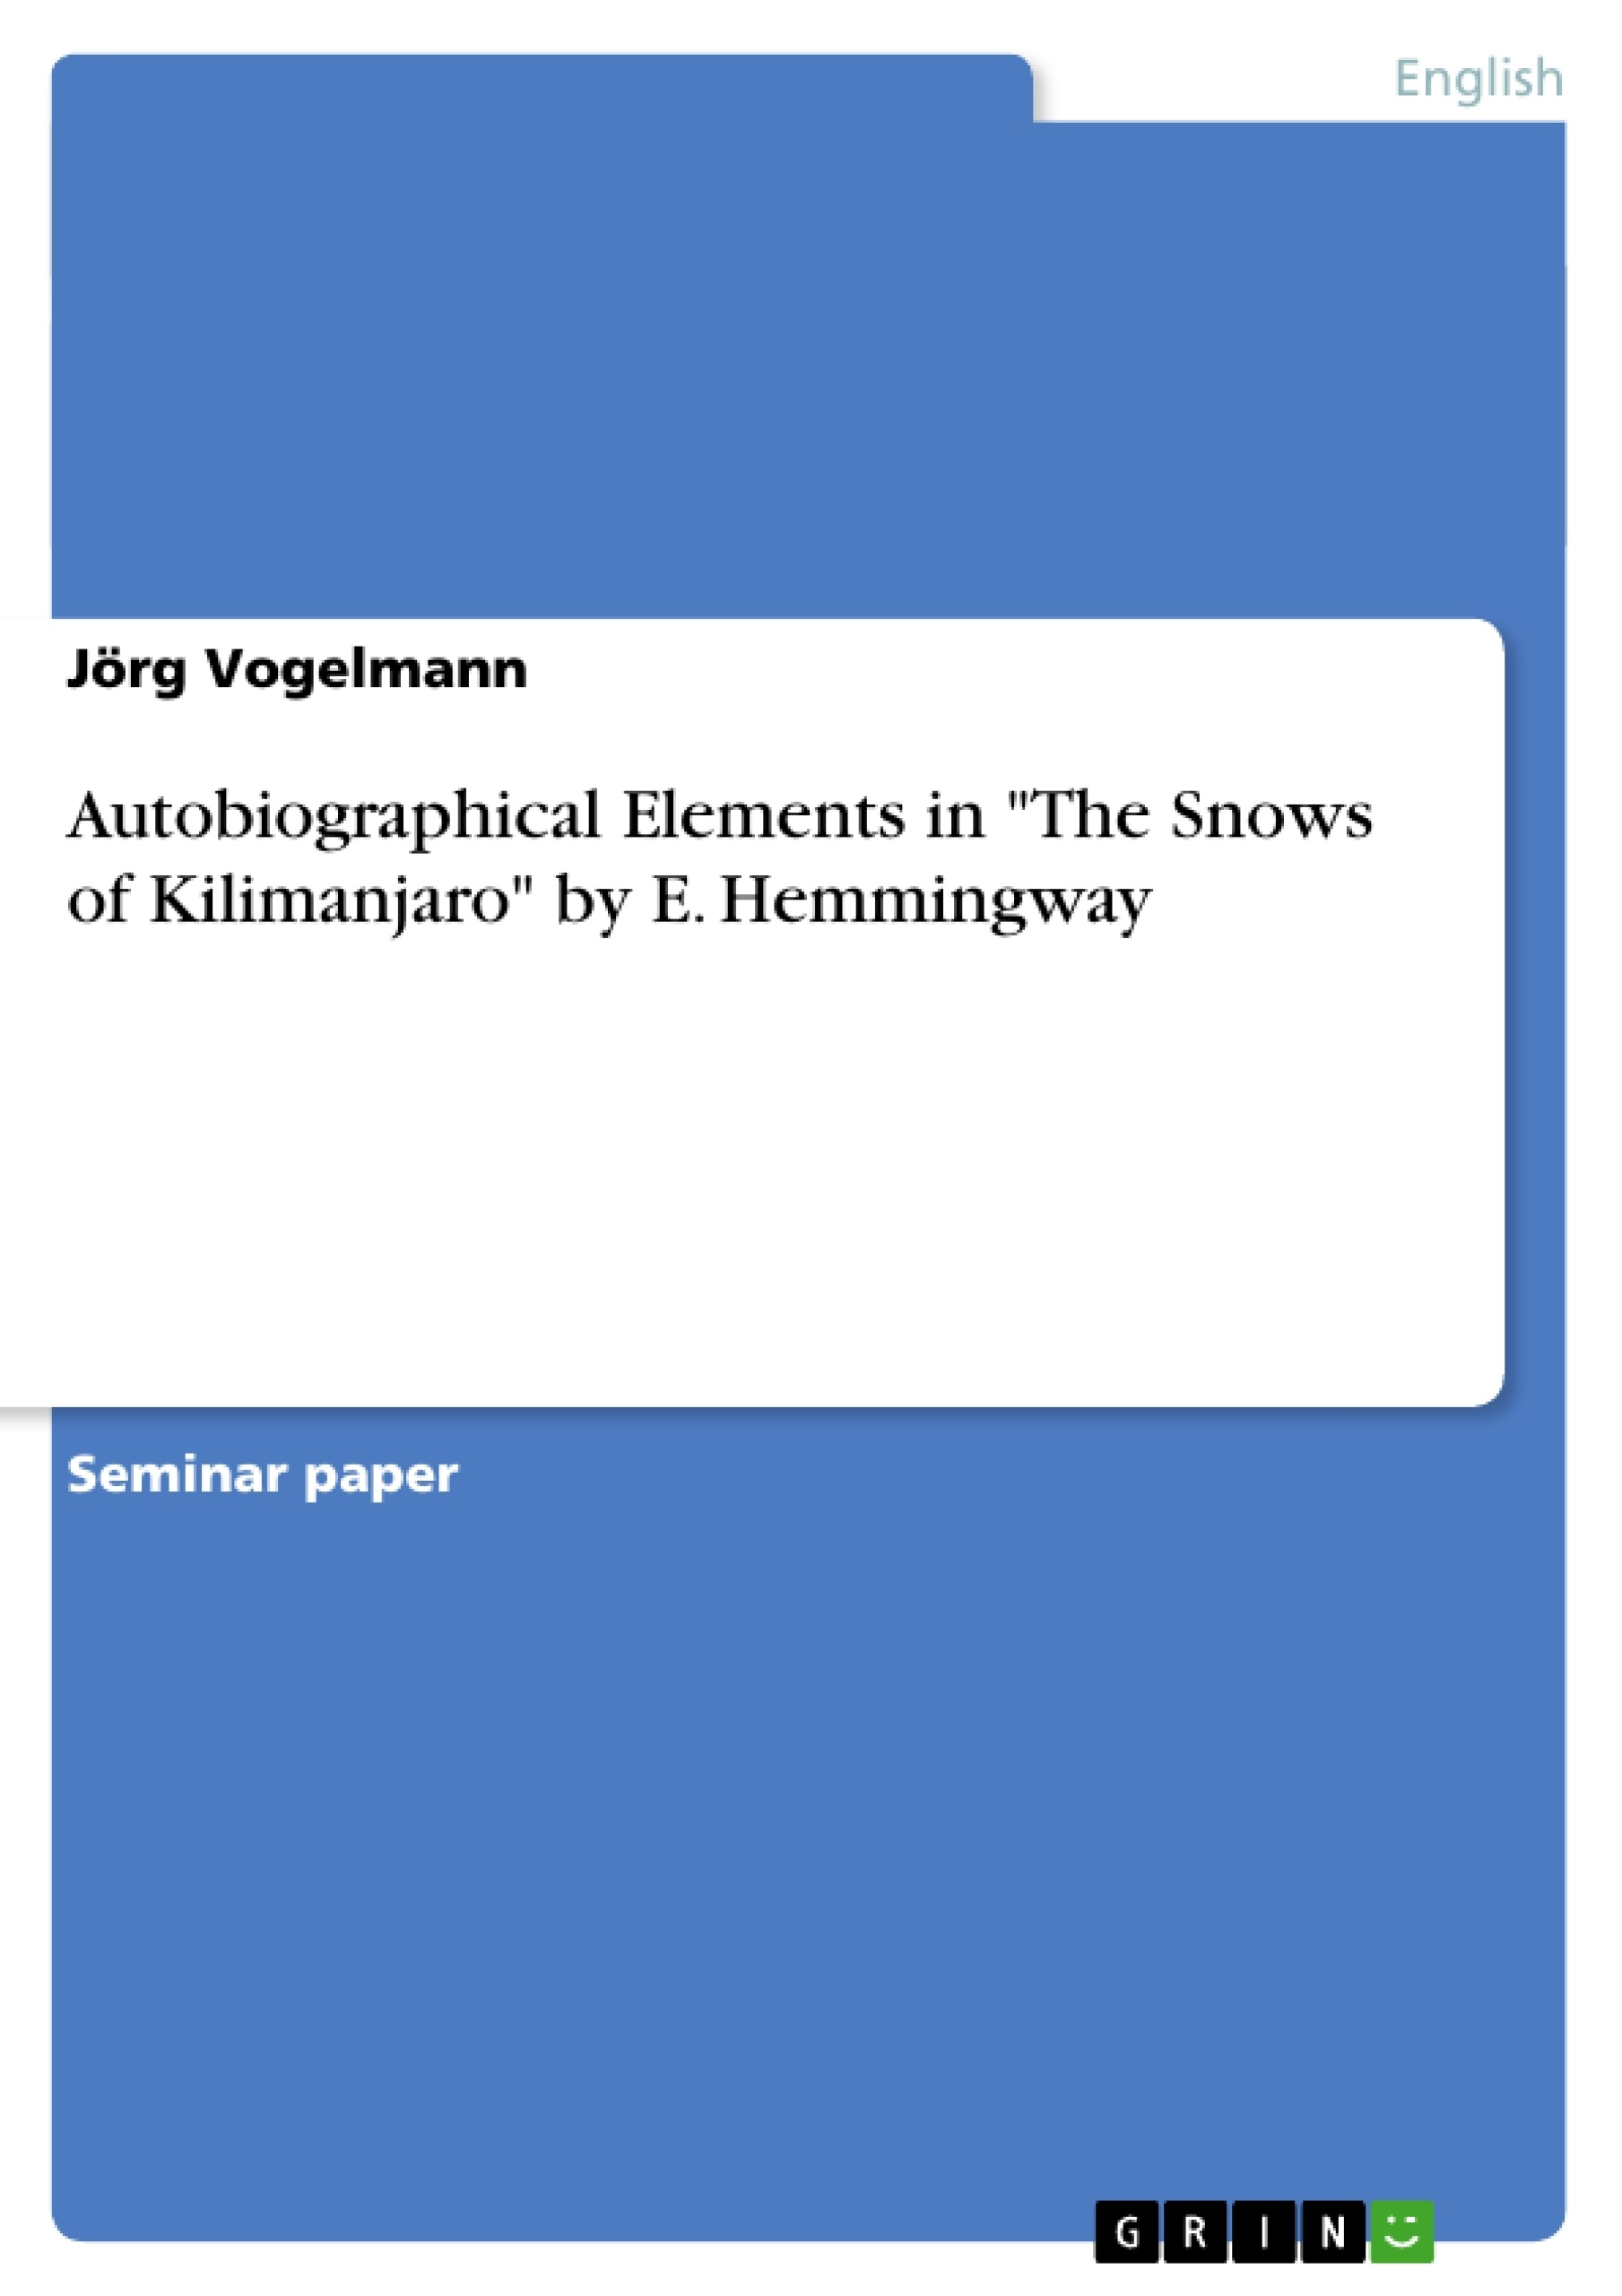 thesis statement for the snows of kilimanjaro